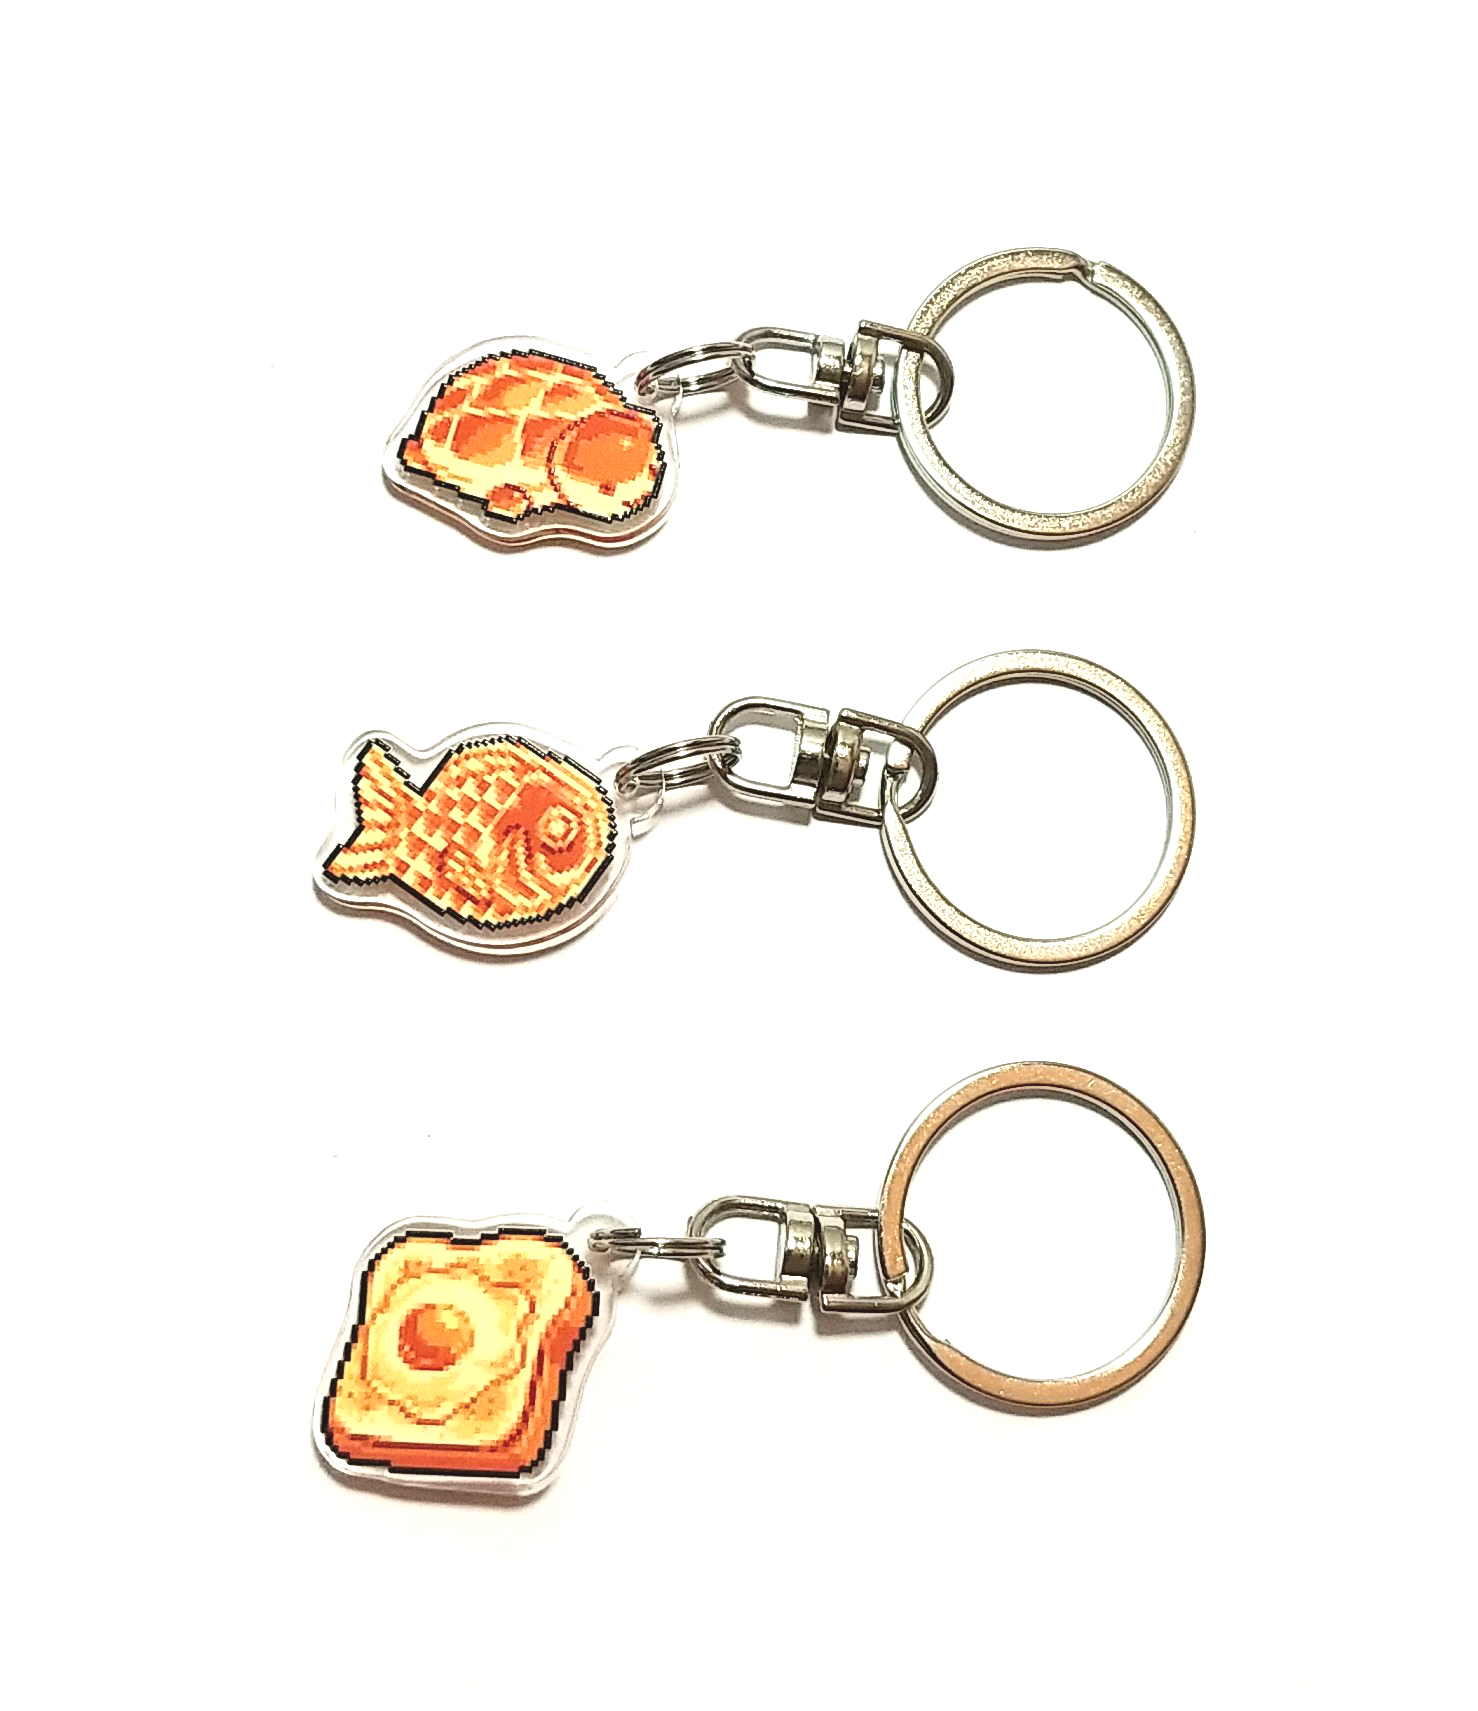 Image of Bread Keychains